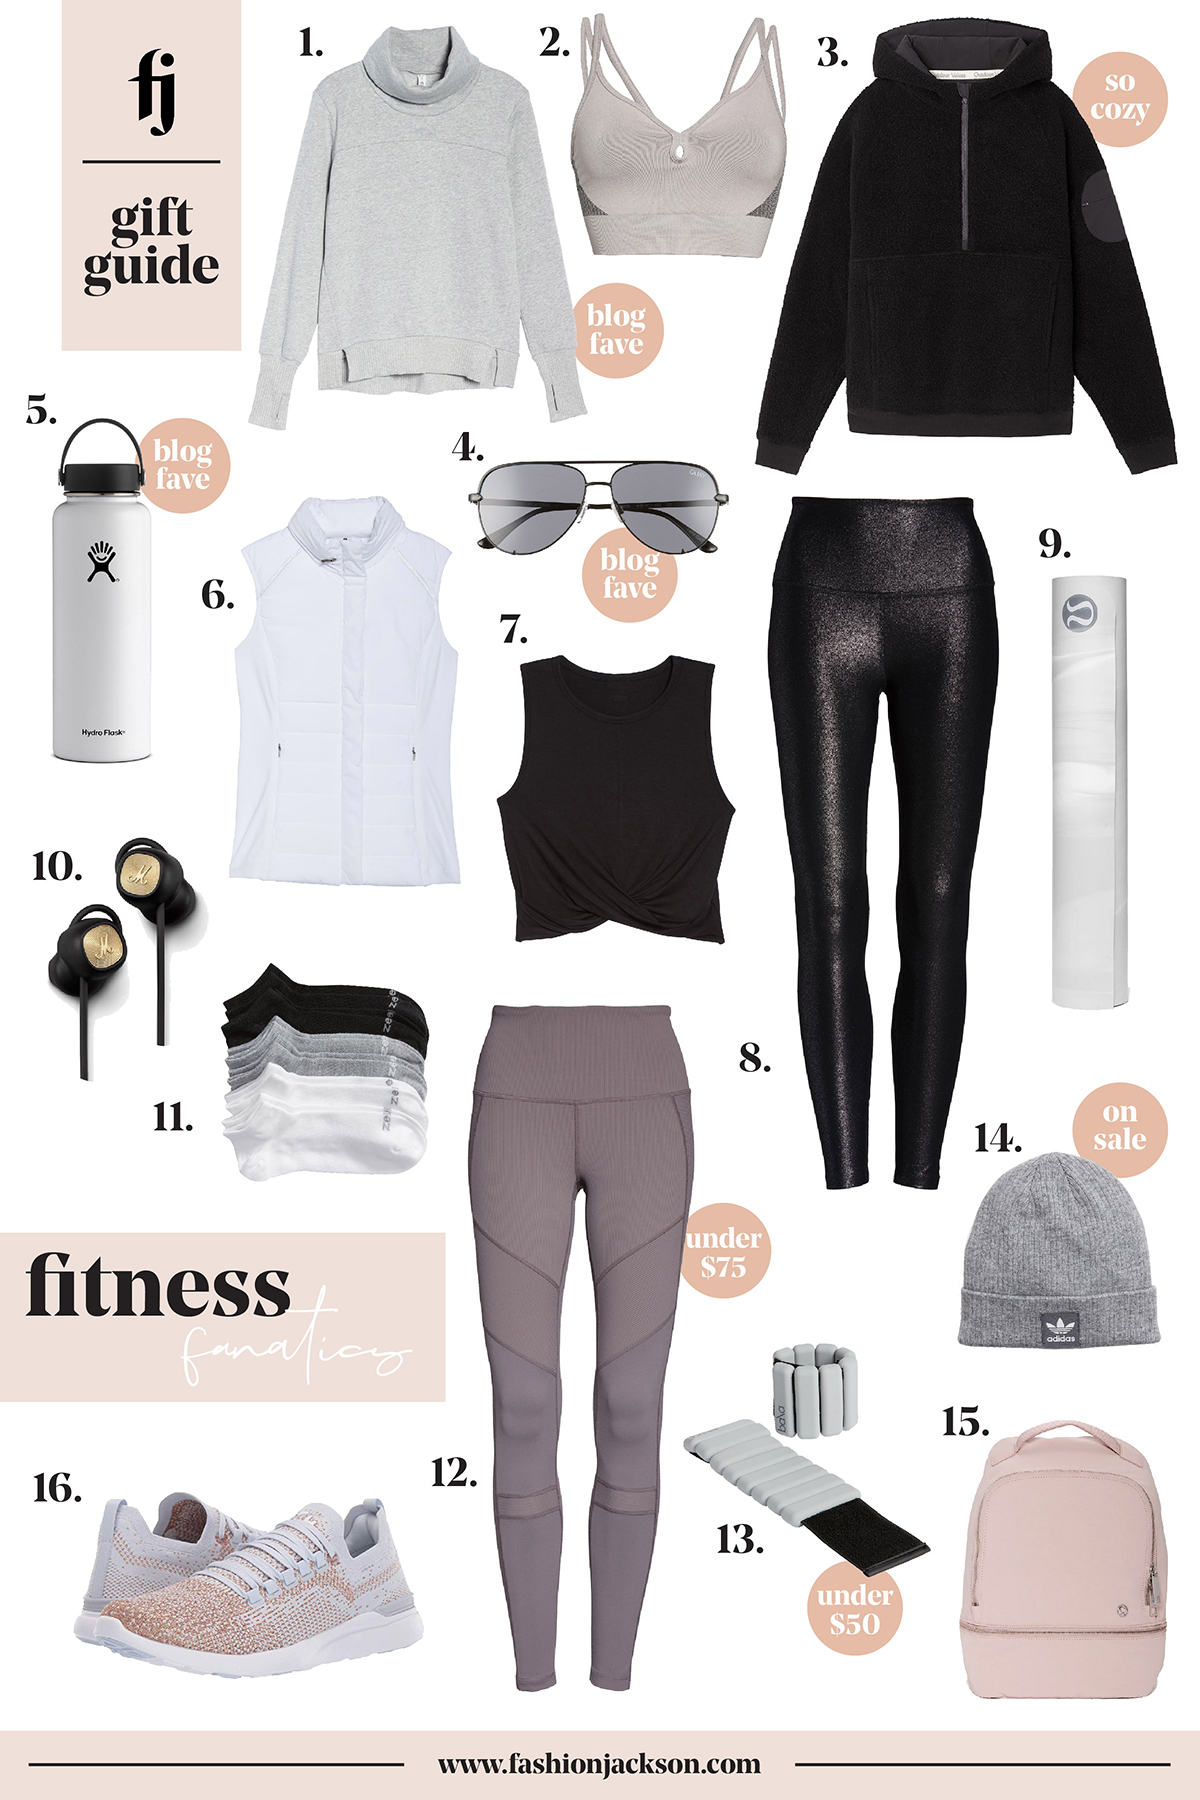 Fashion Jackson Fitness Gift Guide